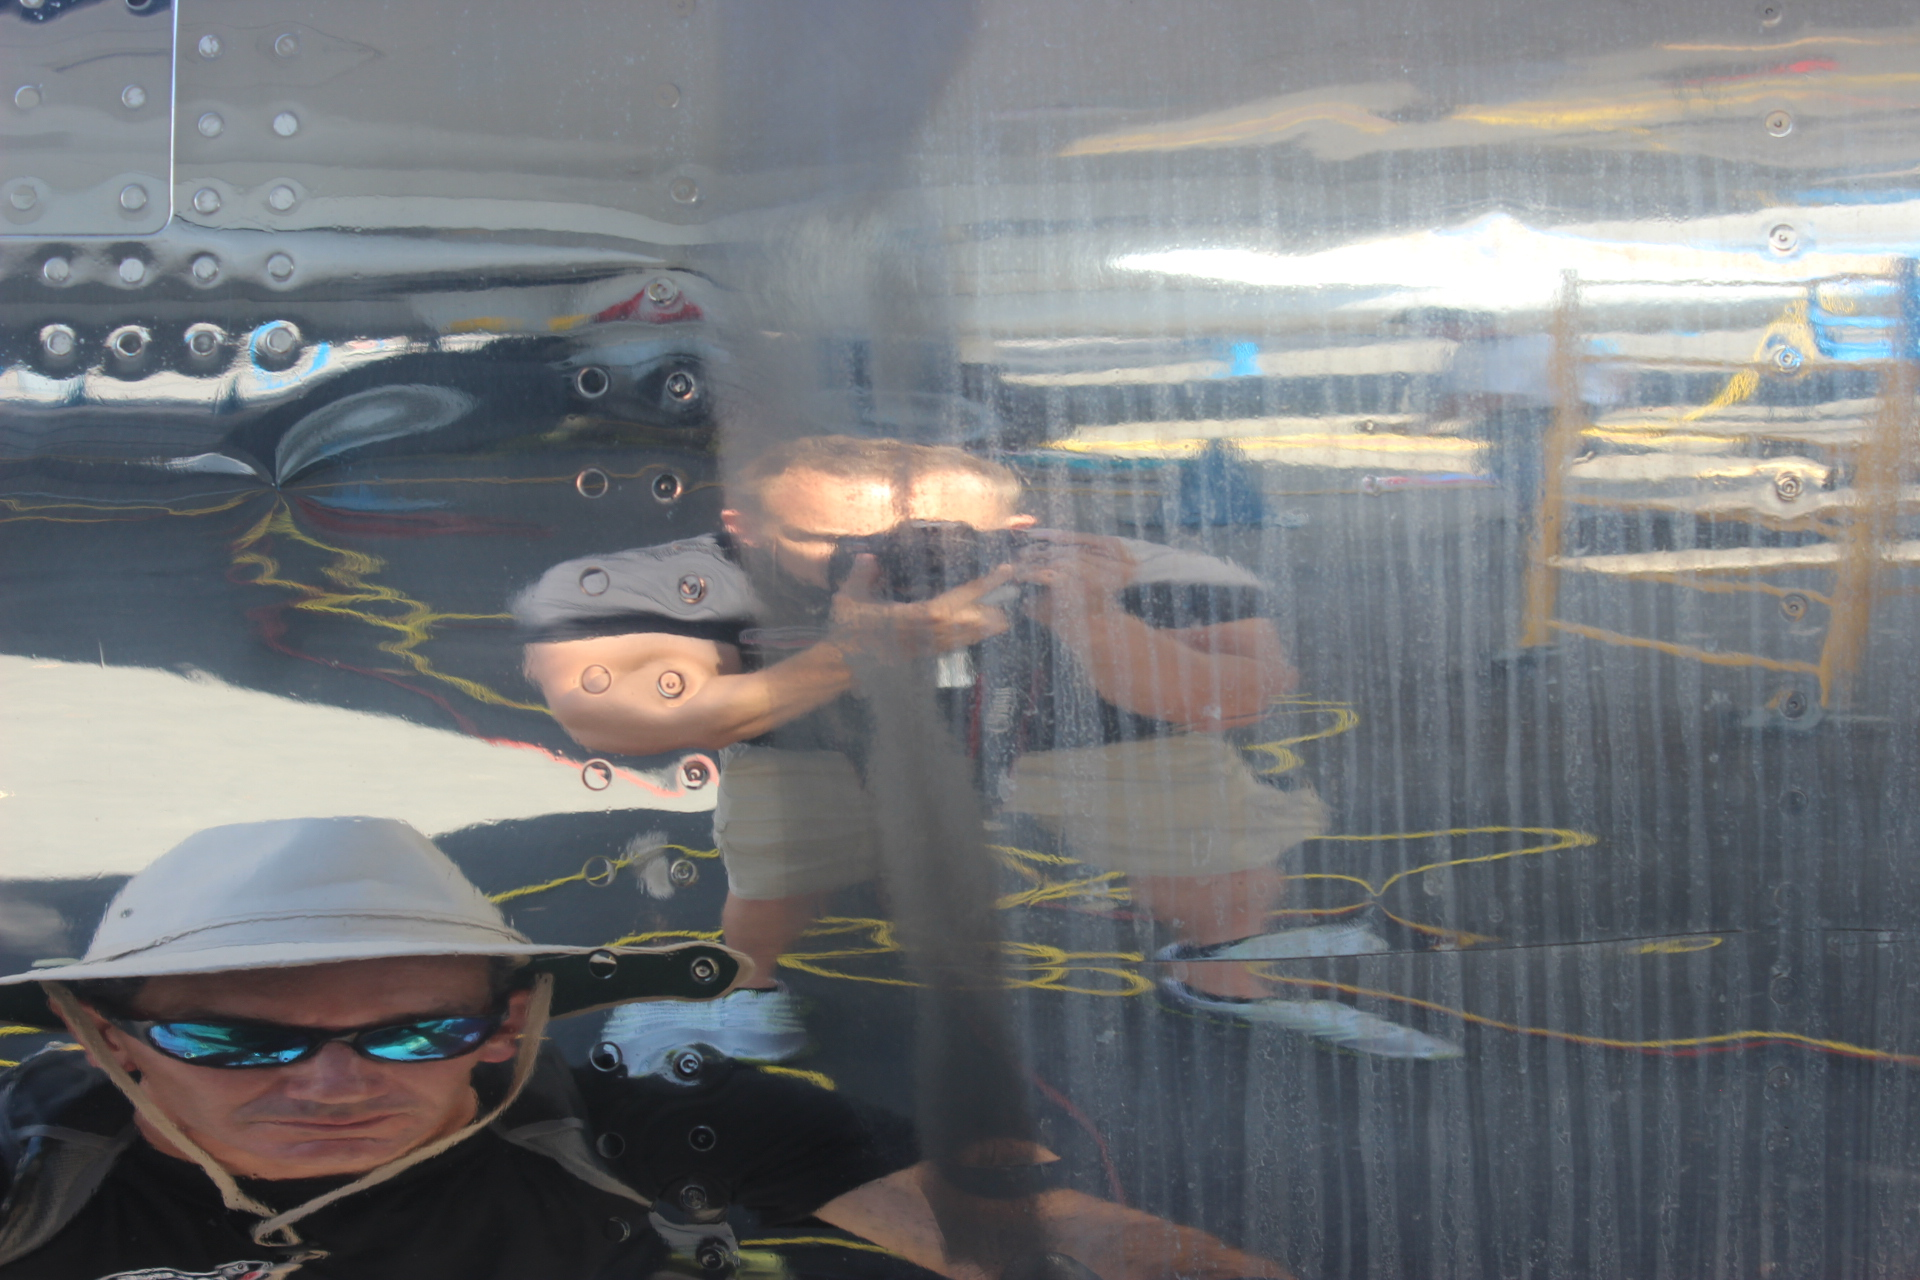 Test spot on the engine of Air Force One: MIRROR RESULT